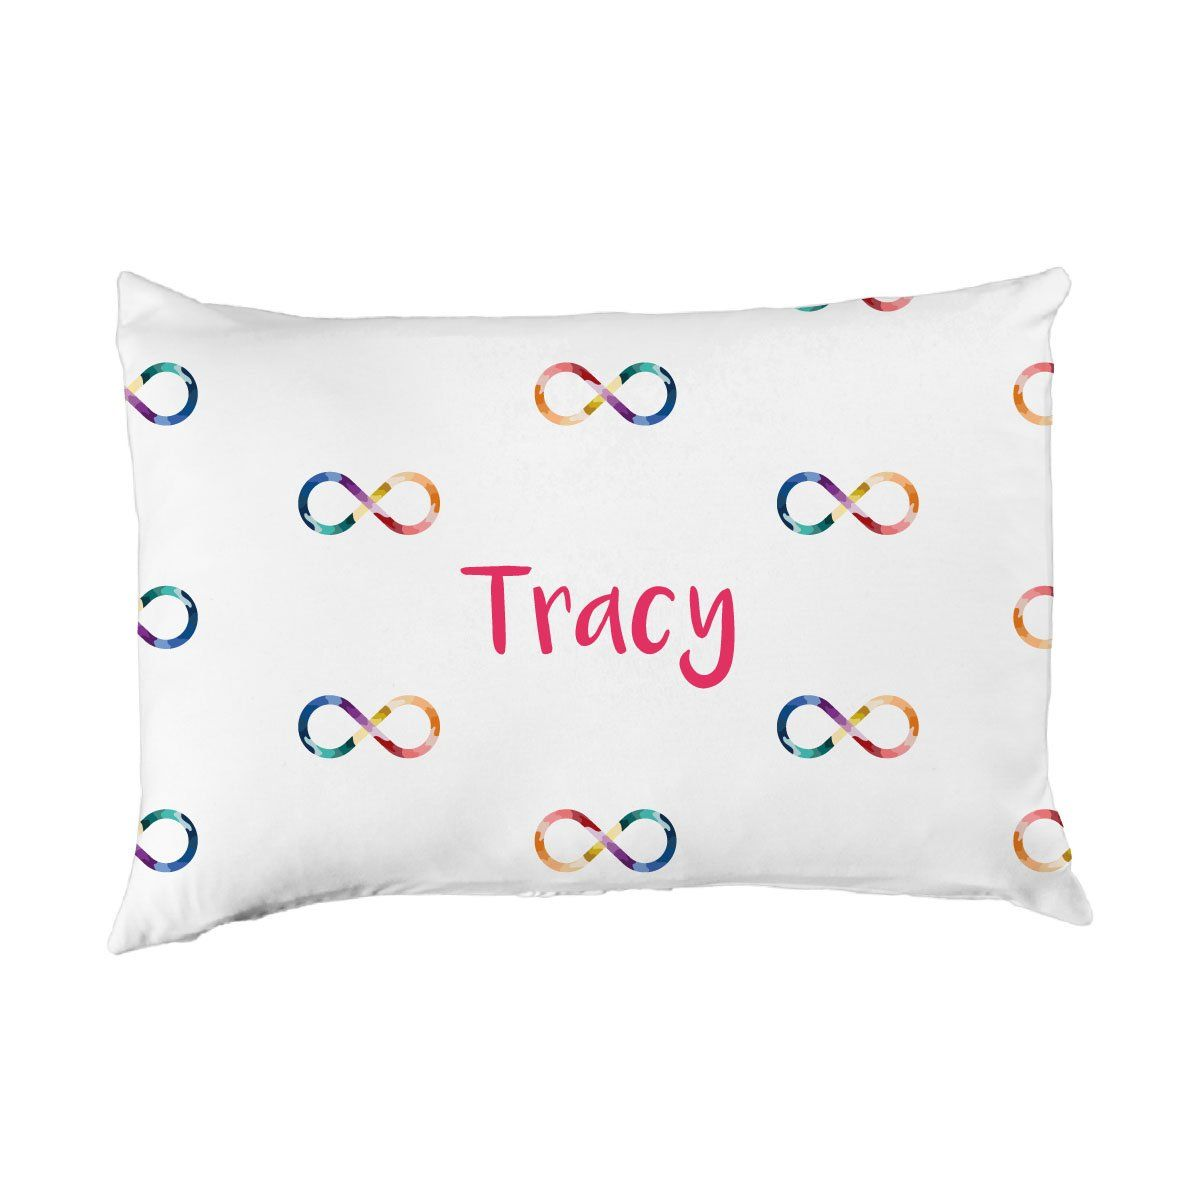 Tracy's Infinity Sign | Big Kid Pillow Case